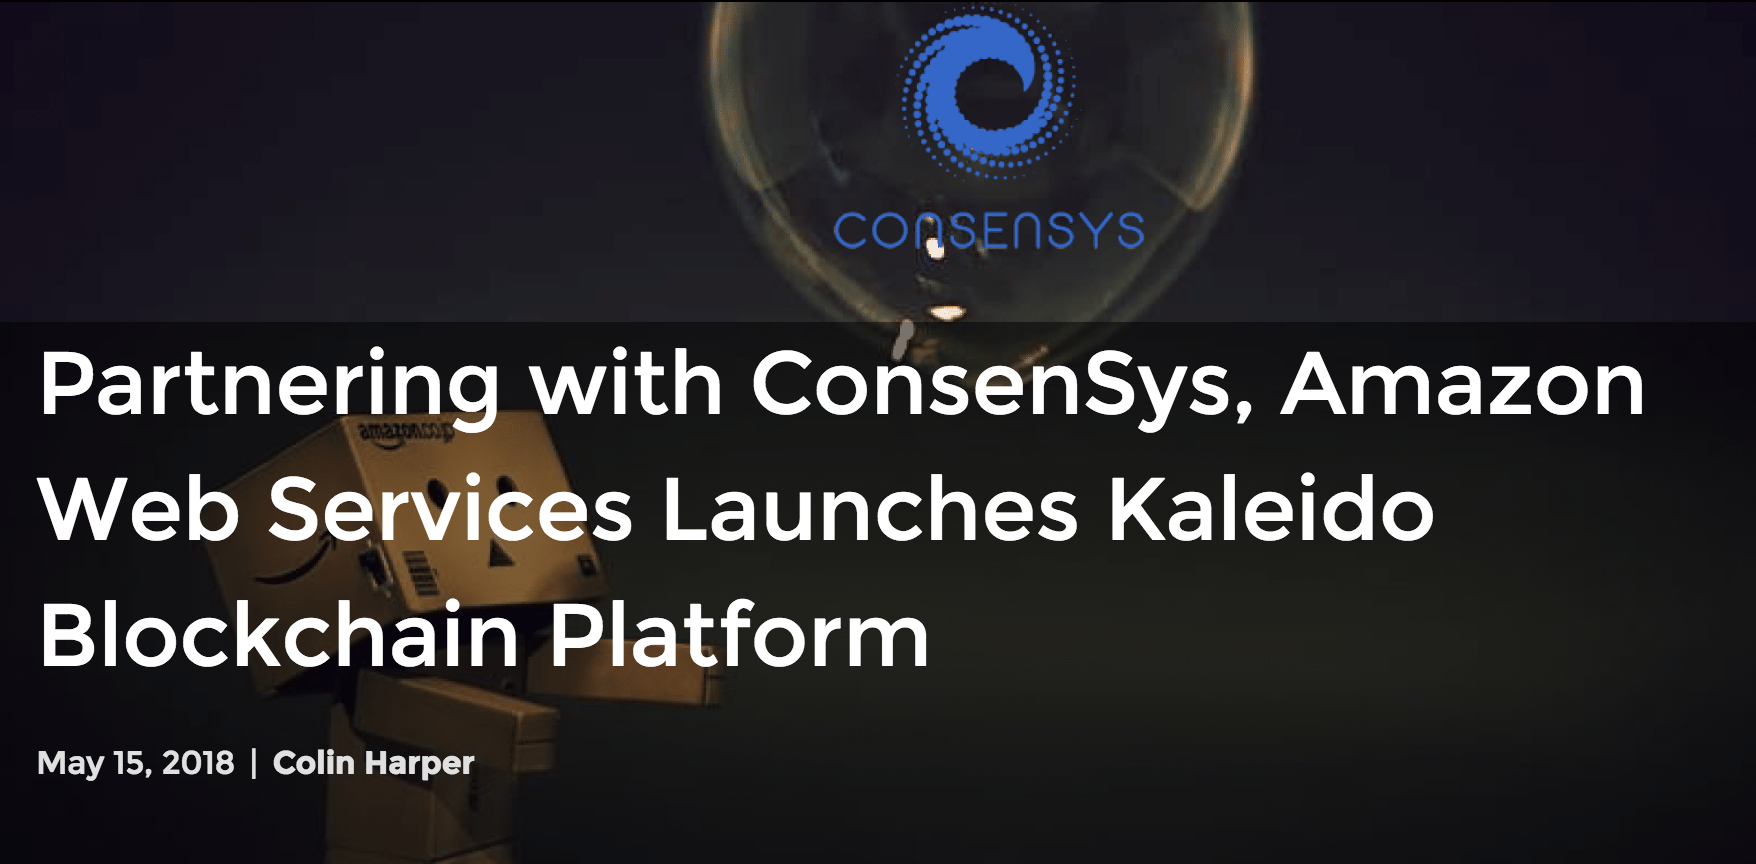 "https://coincentral.com/partnering-with-consensys-amazon-web-services-launches-kaleido-blockchain-platform/      Introducing Kaleido, Amazon's Foray into Blockchain  Amazon just made its entrance into the blockchain industry, and it's opening the door with a platform that's meant to make it easier for businesses and enterprises to implement the nascent technology.  The web services monolith has partnered with the  Ethereum  incubator ConsenSys to bring the Kaleido Blockchain Business Cloud platform, ""an all-in-one blockchain platform aimed at speeding and simplifying enterprise use of the technology,"" to the Amazon Web Service's Marketplace.  According to an official  press release  by Amazon, ""Kaleido provides a full solution for those ready for something more than do-it-yourself scripts or templates, streamlining the process of standing up secure, private blockchain networks without sacrificing the ability to customize the environment. These private networks offer all the benefits of the underlying blockchain technology, while maintaining the necessary levels of security and performance.""  In essence, Kaleido was developed to lower those barriers of entry, both technical and financial, that have kept organizations from applying or experimenting with blockchain technology for their business operations.  The brain-child of ConsenSys, Kaleido runs on Amazon's Web Services (AWS) and is available on the AWS marketplace. Featured in AWS's suite of applications, Kaleido is compatible with Amazon's existing web services, including Amazon EMR, Amazon Athena, and Amazon Virtual Private Cloud, among others.  A Hybrid Approach to Enterprise Blockchain Networks  When attempting to implement and deploy blockchain networks, companies often run into insurmountable or costly obstacles. Confronted with a technical labyrinth of consensus mechanisms, governance models, and coding languages–not to mention the lexicon of technical jargon that accompanies these–implementing blockchain solutions can become more of a hassle than the problems they seek to fix.  ""Customers are running into a common set of problems and pitfalls as they invest significant time and money in their blockchain projects,"" Steve Cerveny, ConsenSys' enterprise lead and founder of the Kaleido platform explains. ""So, we assembled a team to build a platform that pulls together—in a simple, cohesive, and unified way—the right experiences and tools. We knew we needed to design a platform from the business problems down, since that is where the enduring problems are that companies face in the blockchain space.""  Kaleido's private-public approach to system operations looks to provide organizations with the immutable security of a public blockchain without compromising the flexibility of a private network. This ""dual mode"" allows Kaleido's users to link a private, permissioned system built on Ethereum to the public, permissionless Ethereum network at large. Actions on the private chain, therefore, are anchored to the Ethereum  mainnet , making it easy to publicly verify any data or information should a conflict arise internally within an organization's private system.  In addition to these relay anchors, Kaleido features integrated analytics and support for various consensus mechanisms (e.g., IBFT, RAFT, POA) and protocol options (e.g., Geth and Quorum).   A Step Towards Accessibility    In 2015, ConsenSys attempted to bring similar enterprise solutions to the forefront of the tech industry's attention with Ethereum Blockchain as-a-Service (E BaaS) through Microsoft's cloud-powered Azure. E BaaS, though, was a sandbox service that offered its users a set of scripts and basic tools to begin building their own blockchain applications.  Kaleido takes E BaaS's precedent a step further. More than mere scripts and tools, it is a fully-functional, ready-to-deploy blockchain platform available through Amazon's cloud. This will allow entities with no former blockchain experience or coding talent to launch solutions that meet their privacy, compliance, and sclability needs while retaining the blockchain's public assurance of security and reliability.  As the first ever blockchain software as a service built on Ethereum, Kaleido could be an augur for the future of blockchain's mainstream and conventional adoption.  ""Since the inception of ConsenSys in 2014, we have been on a mission to accelerate the adoption of Ethereum and all the benefits that decentralization can bring to business and societies around the world,"" states Joseph Lubin, co-founder of Ethereum and founder of ConsenSys. ""We believe Kaleido will become a de-facto standard and a global blockchain platform for business, providing an underlying foundation that until today was missing from the enterprise toolkit.""   Home  »  Articles  » Partnering with ConsenSys, Amazon Web Services Launches Kaleido Blockchain Platform    CoinCentral's owners, writers, and/or guest post authors may or may not have a vested interest in any of the above projects and businesses. None of the content on CoinCentral is investment advice nor is it a replacement for advice from a certified financial planner."